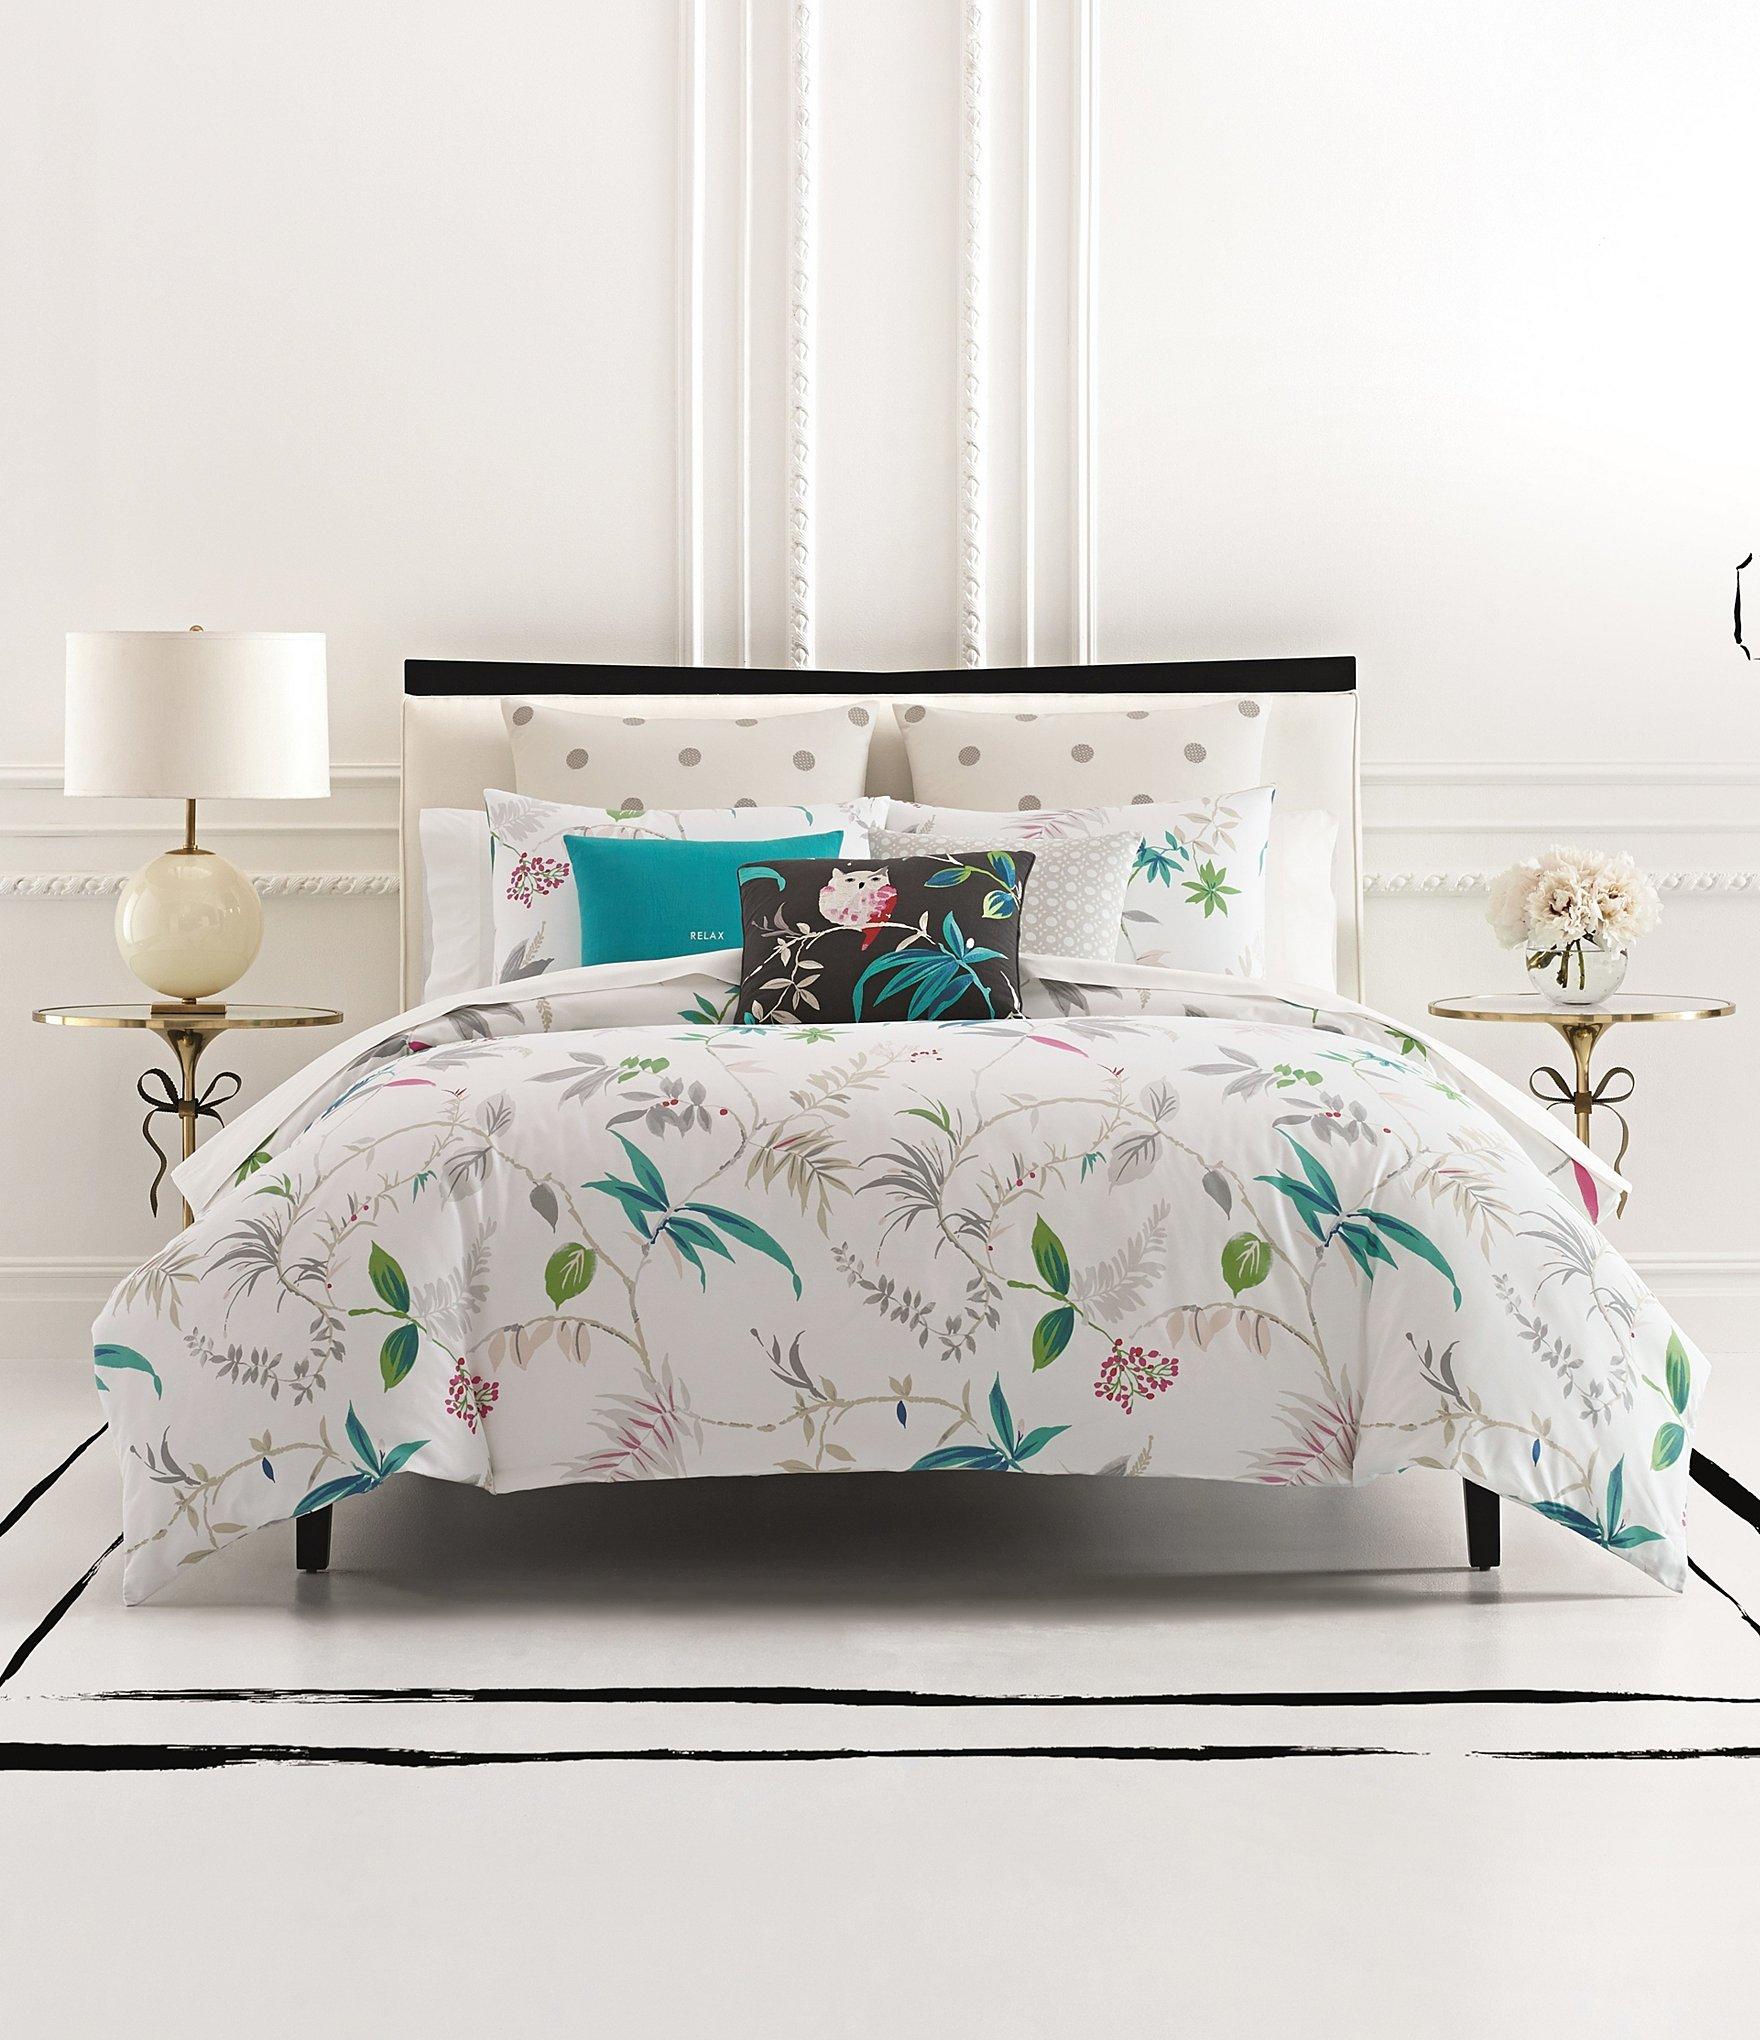 chesapeake bedroom usm kate spade layer collection resmode bedding sharpen op stripe york fpx tif qlt wid product shop new comp